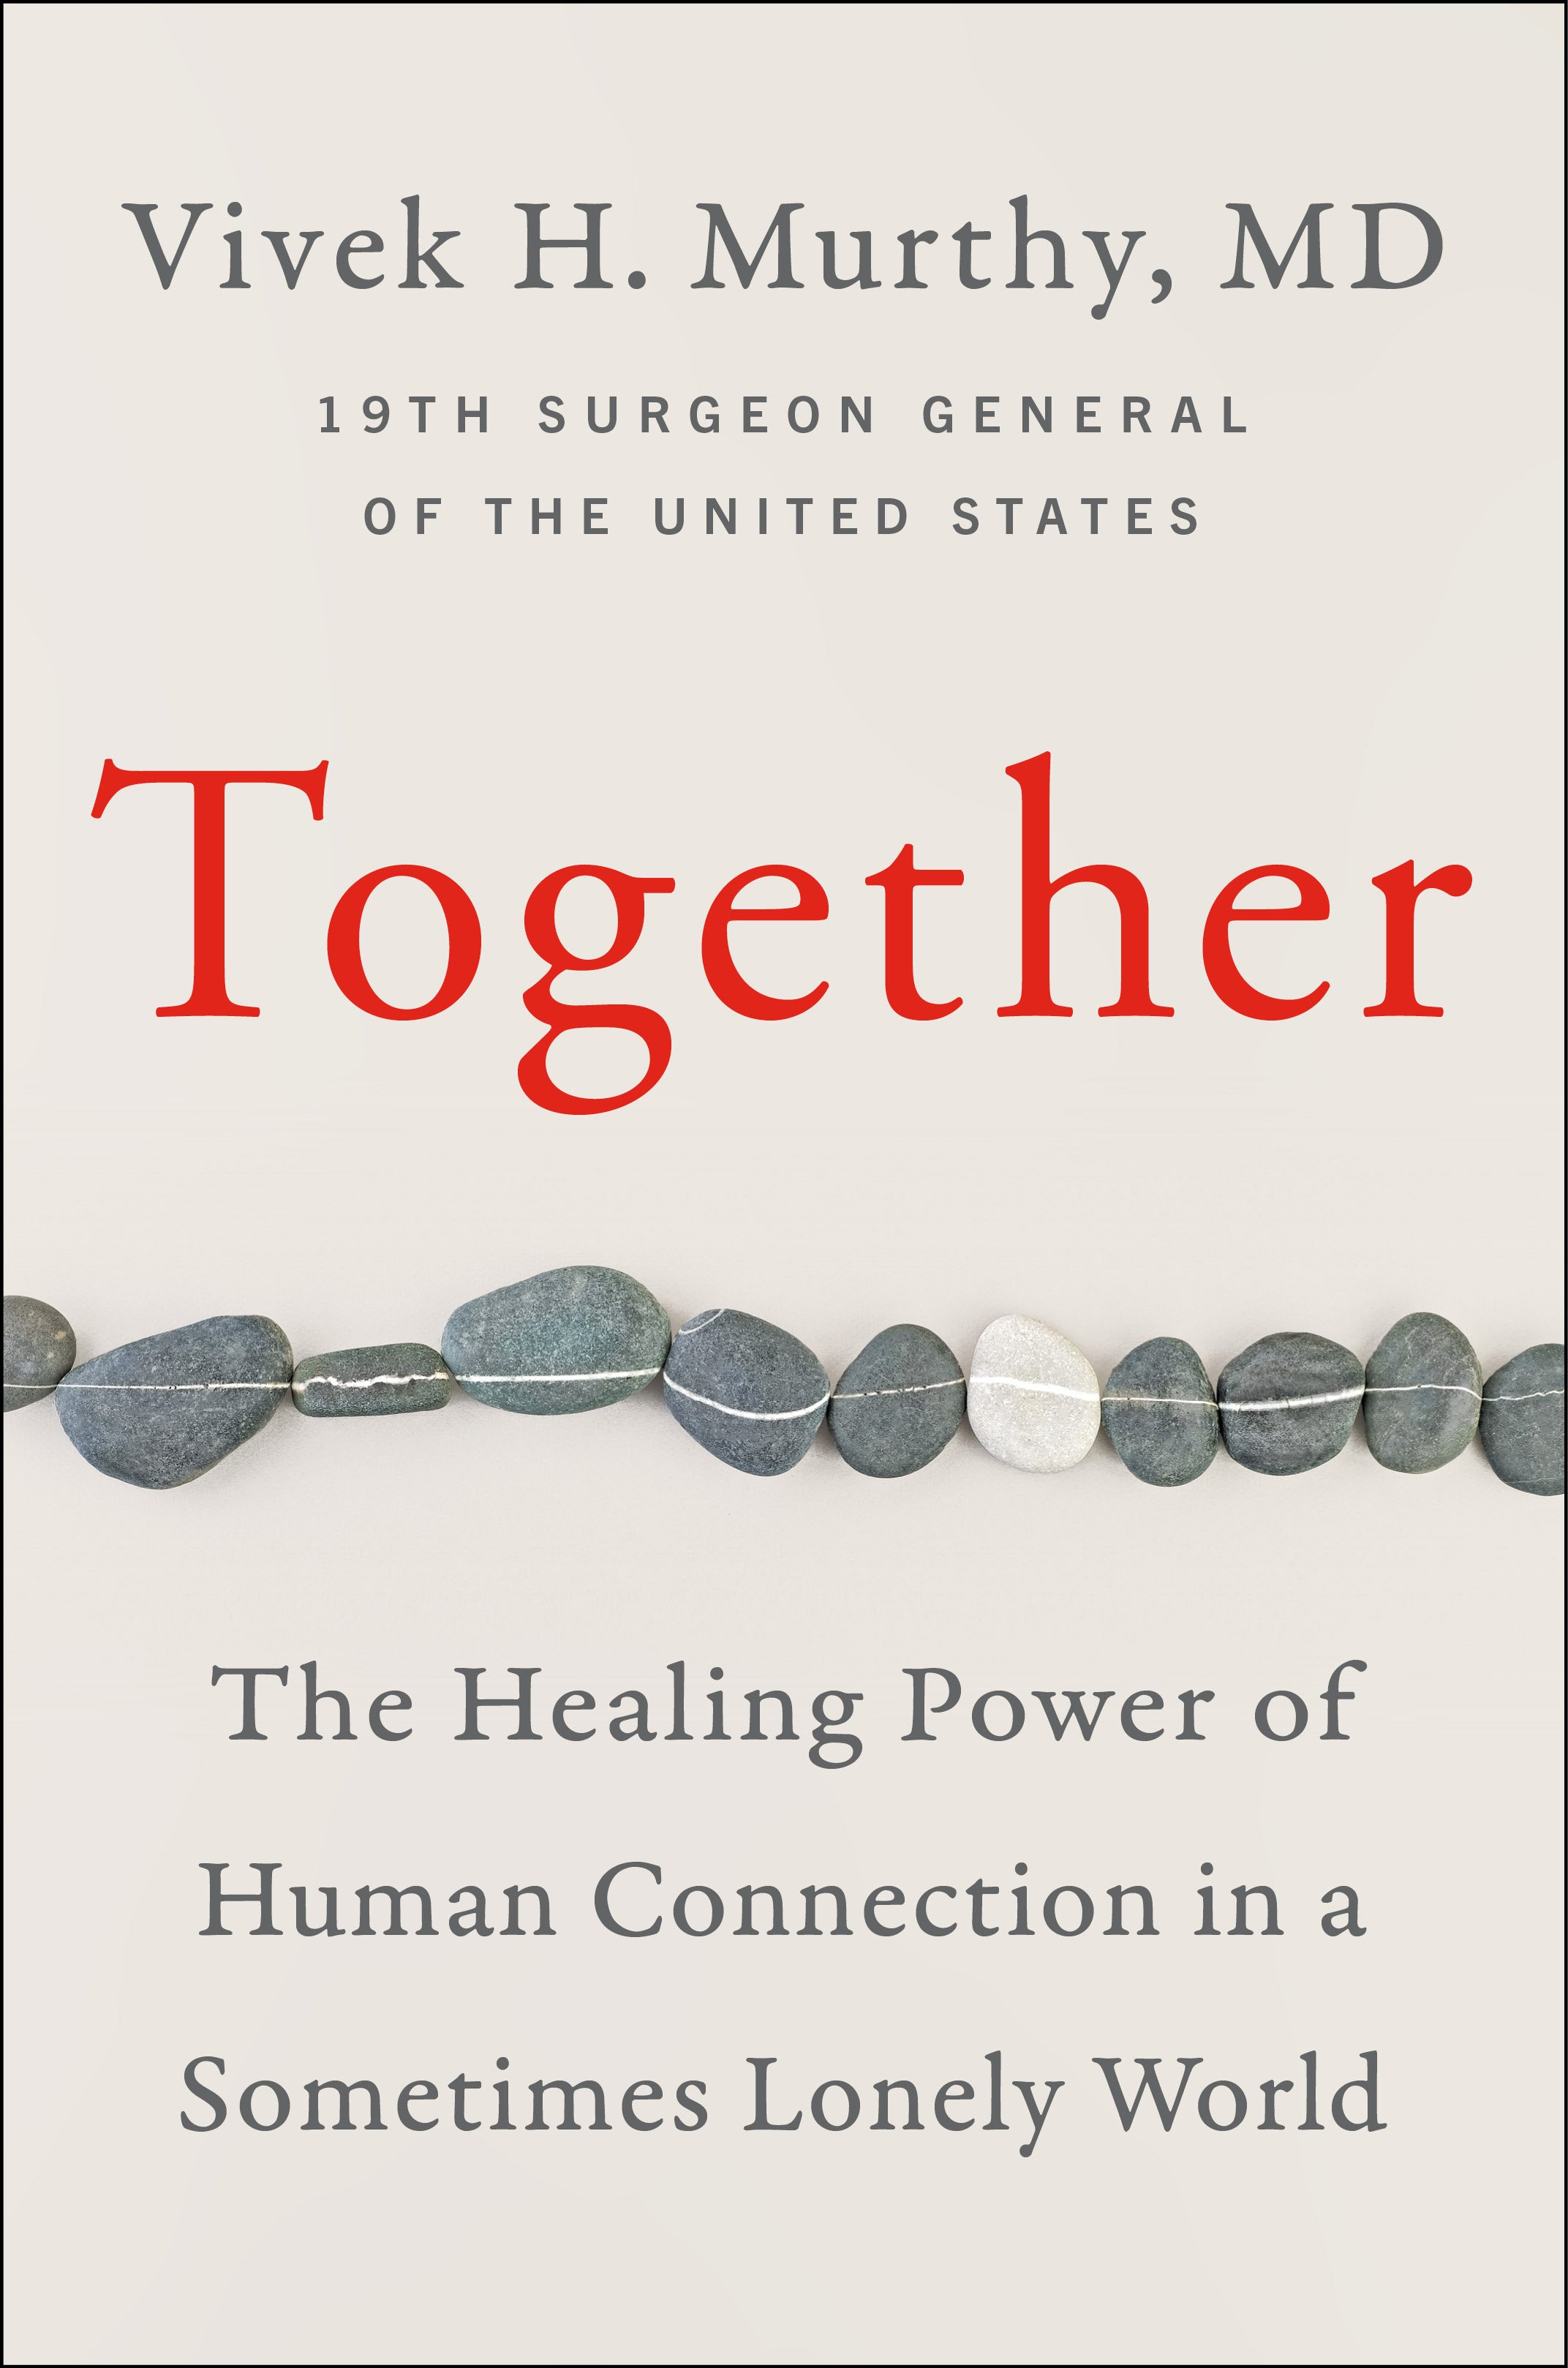 cover of book by vivek h. murthy, md titled together